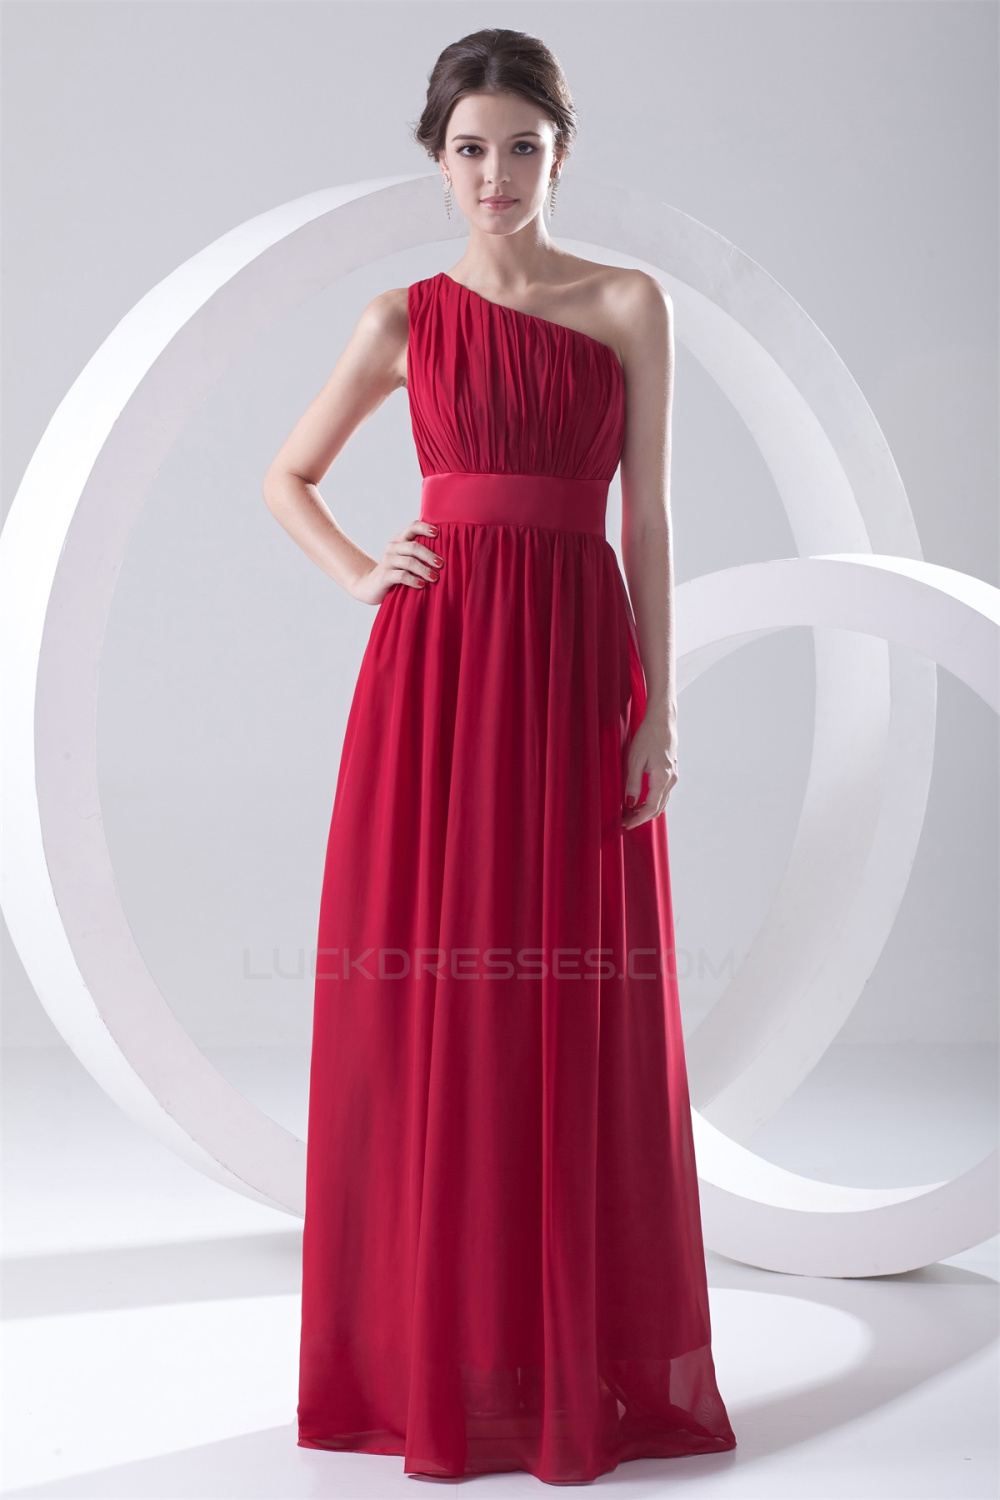 One shoulder chiffon red long bridesmaid dresses under 100 for Long wedding dresses under 100